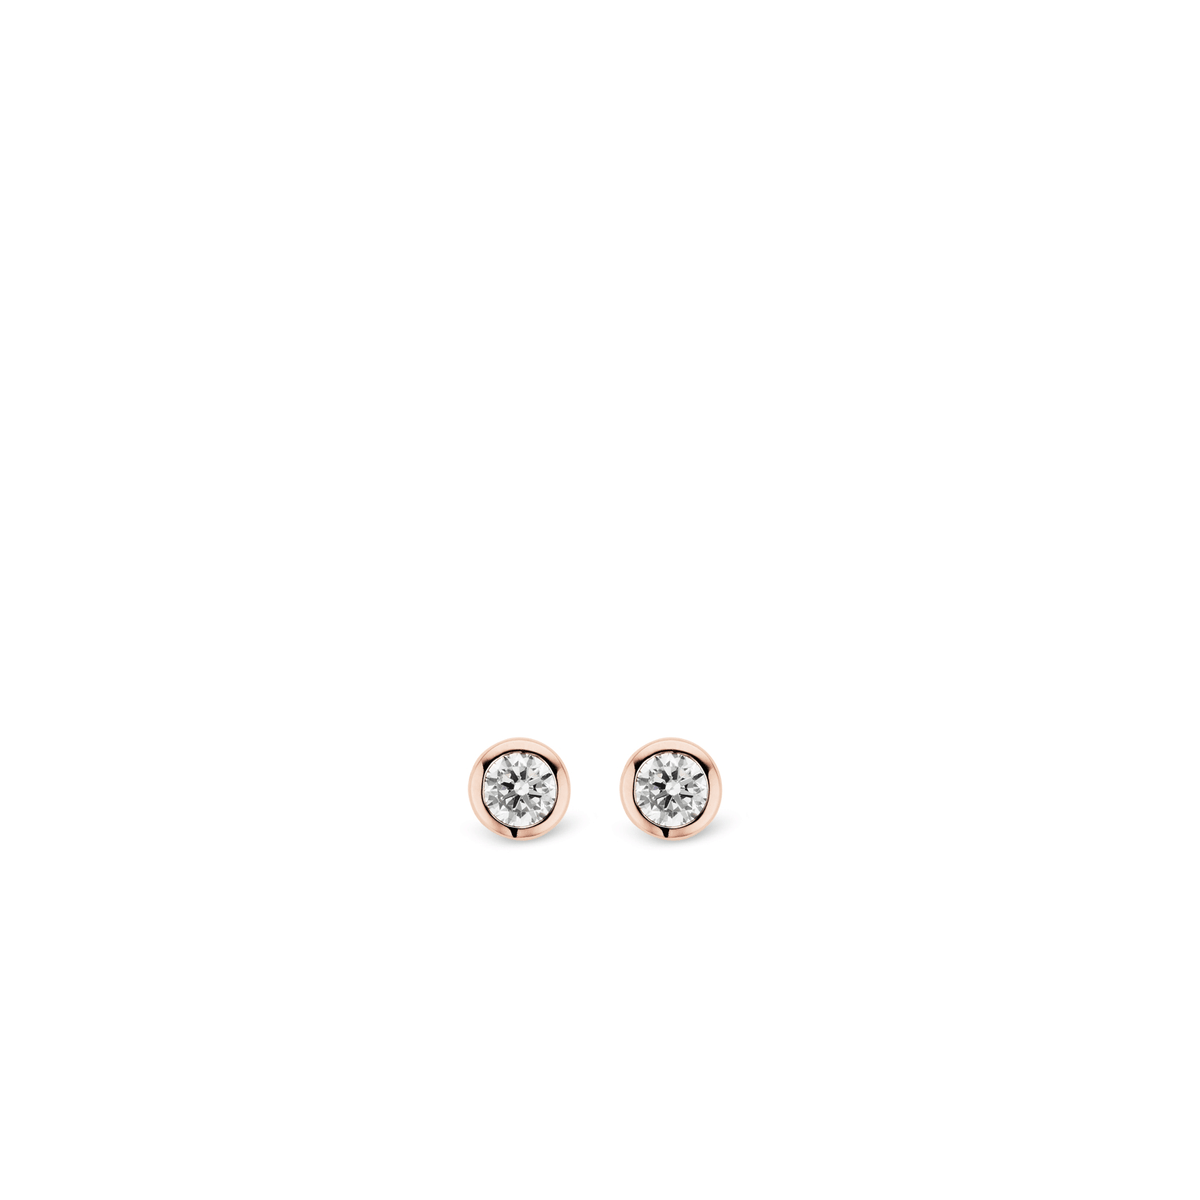 TI SENTO - Milano Earrings 7597ZR